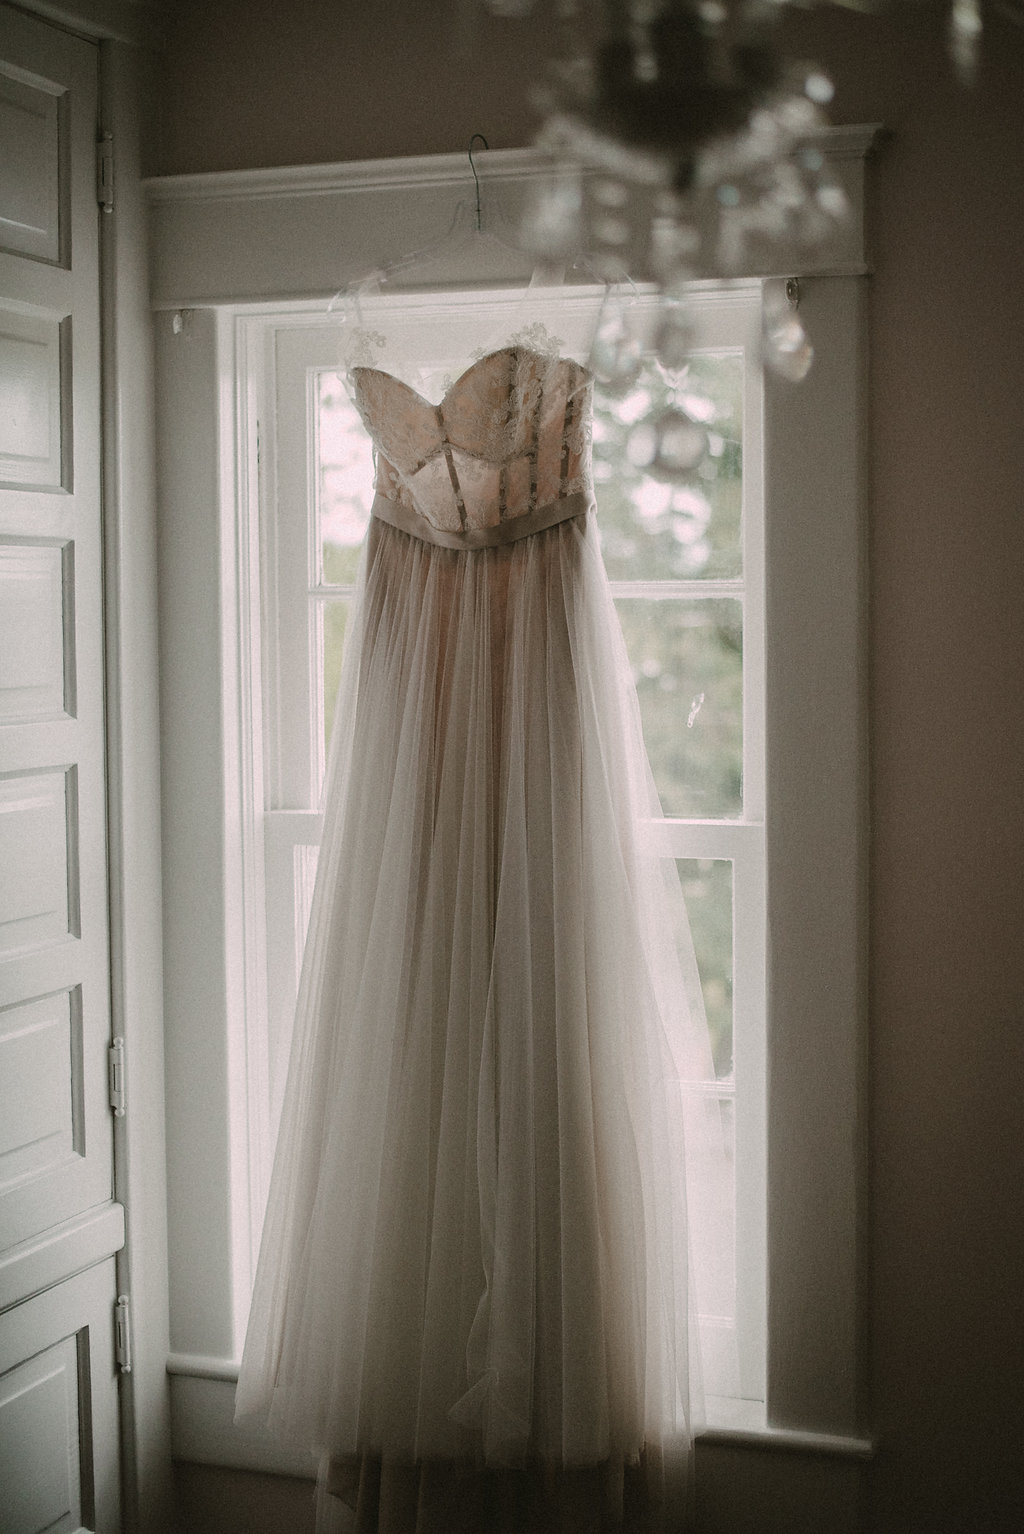 Wedding and pink bridesmaids dresses hanging in a row